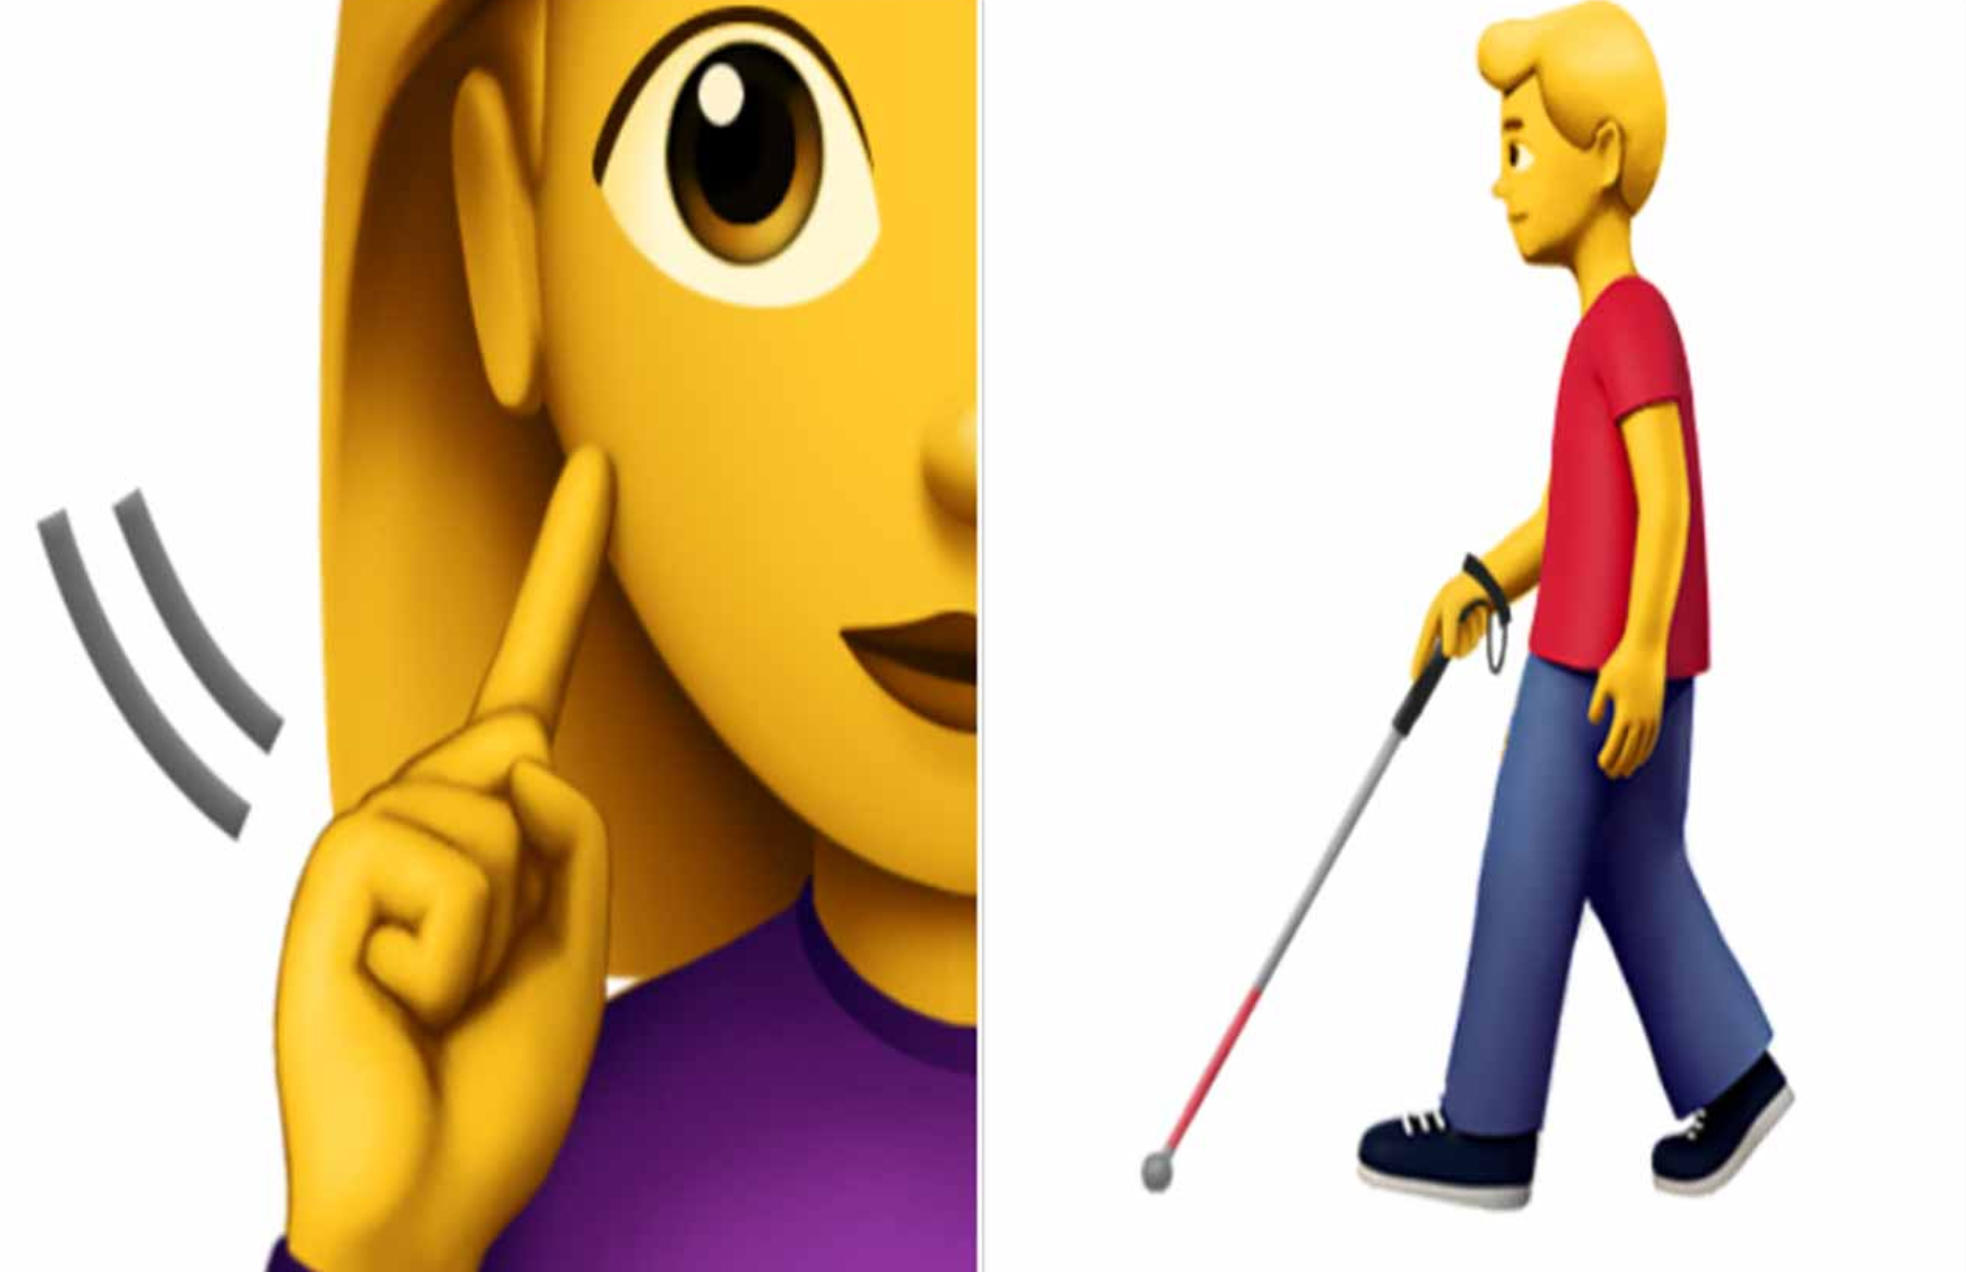 Apple Proposes New Emojis Representing People With